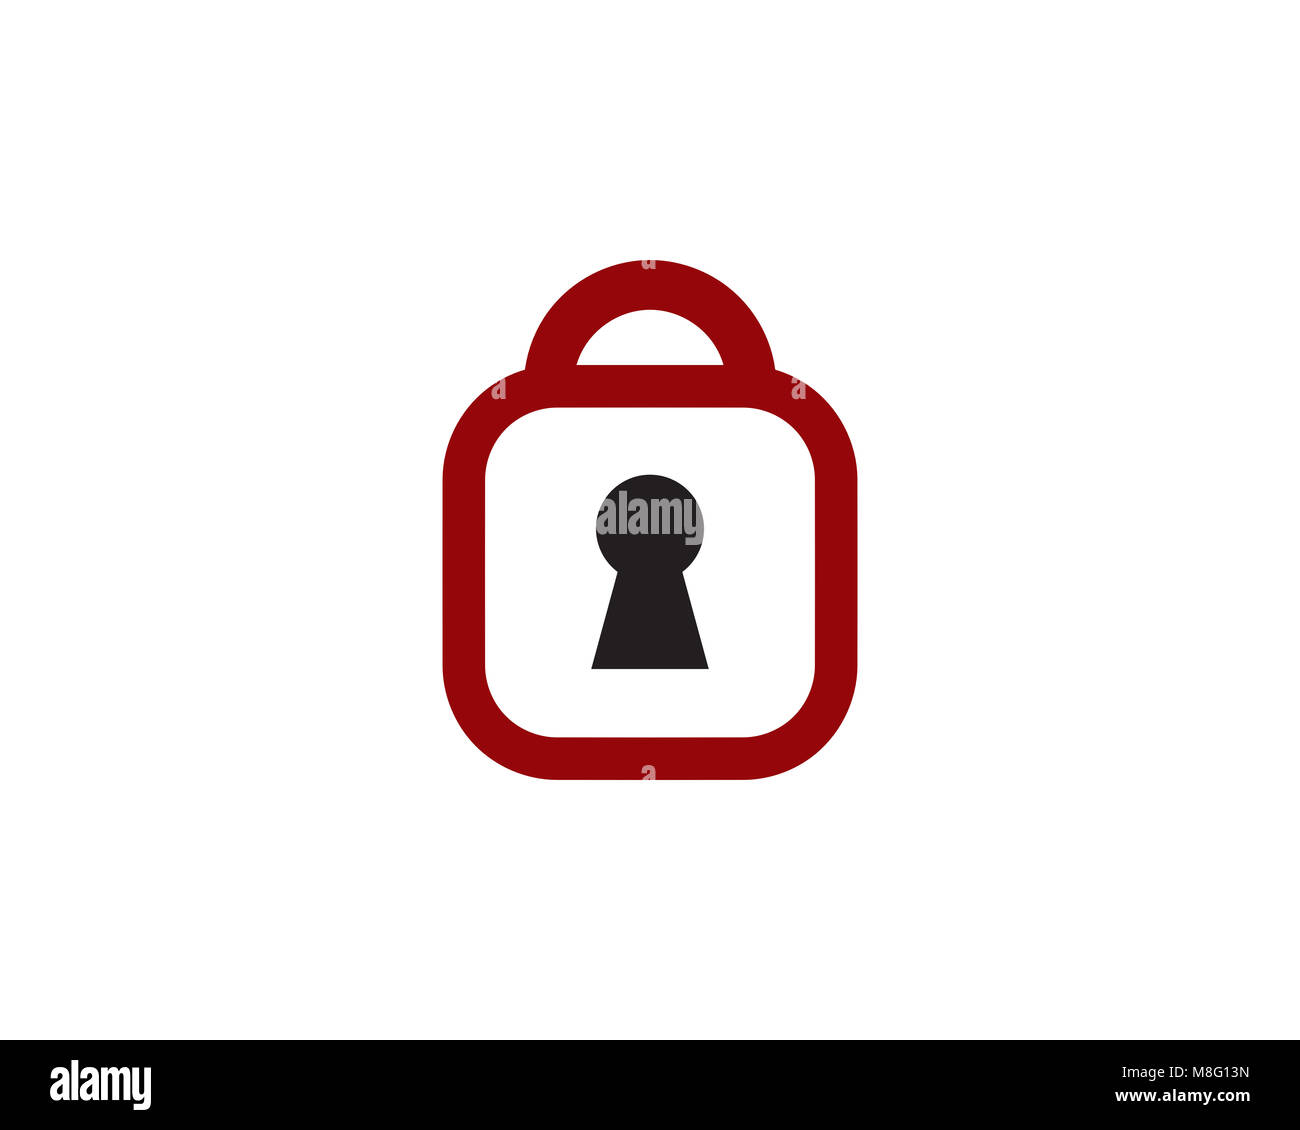 is a symbol that symbolizes security - Stock Image